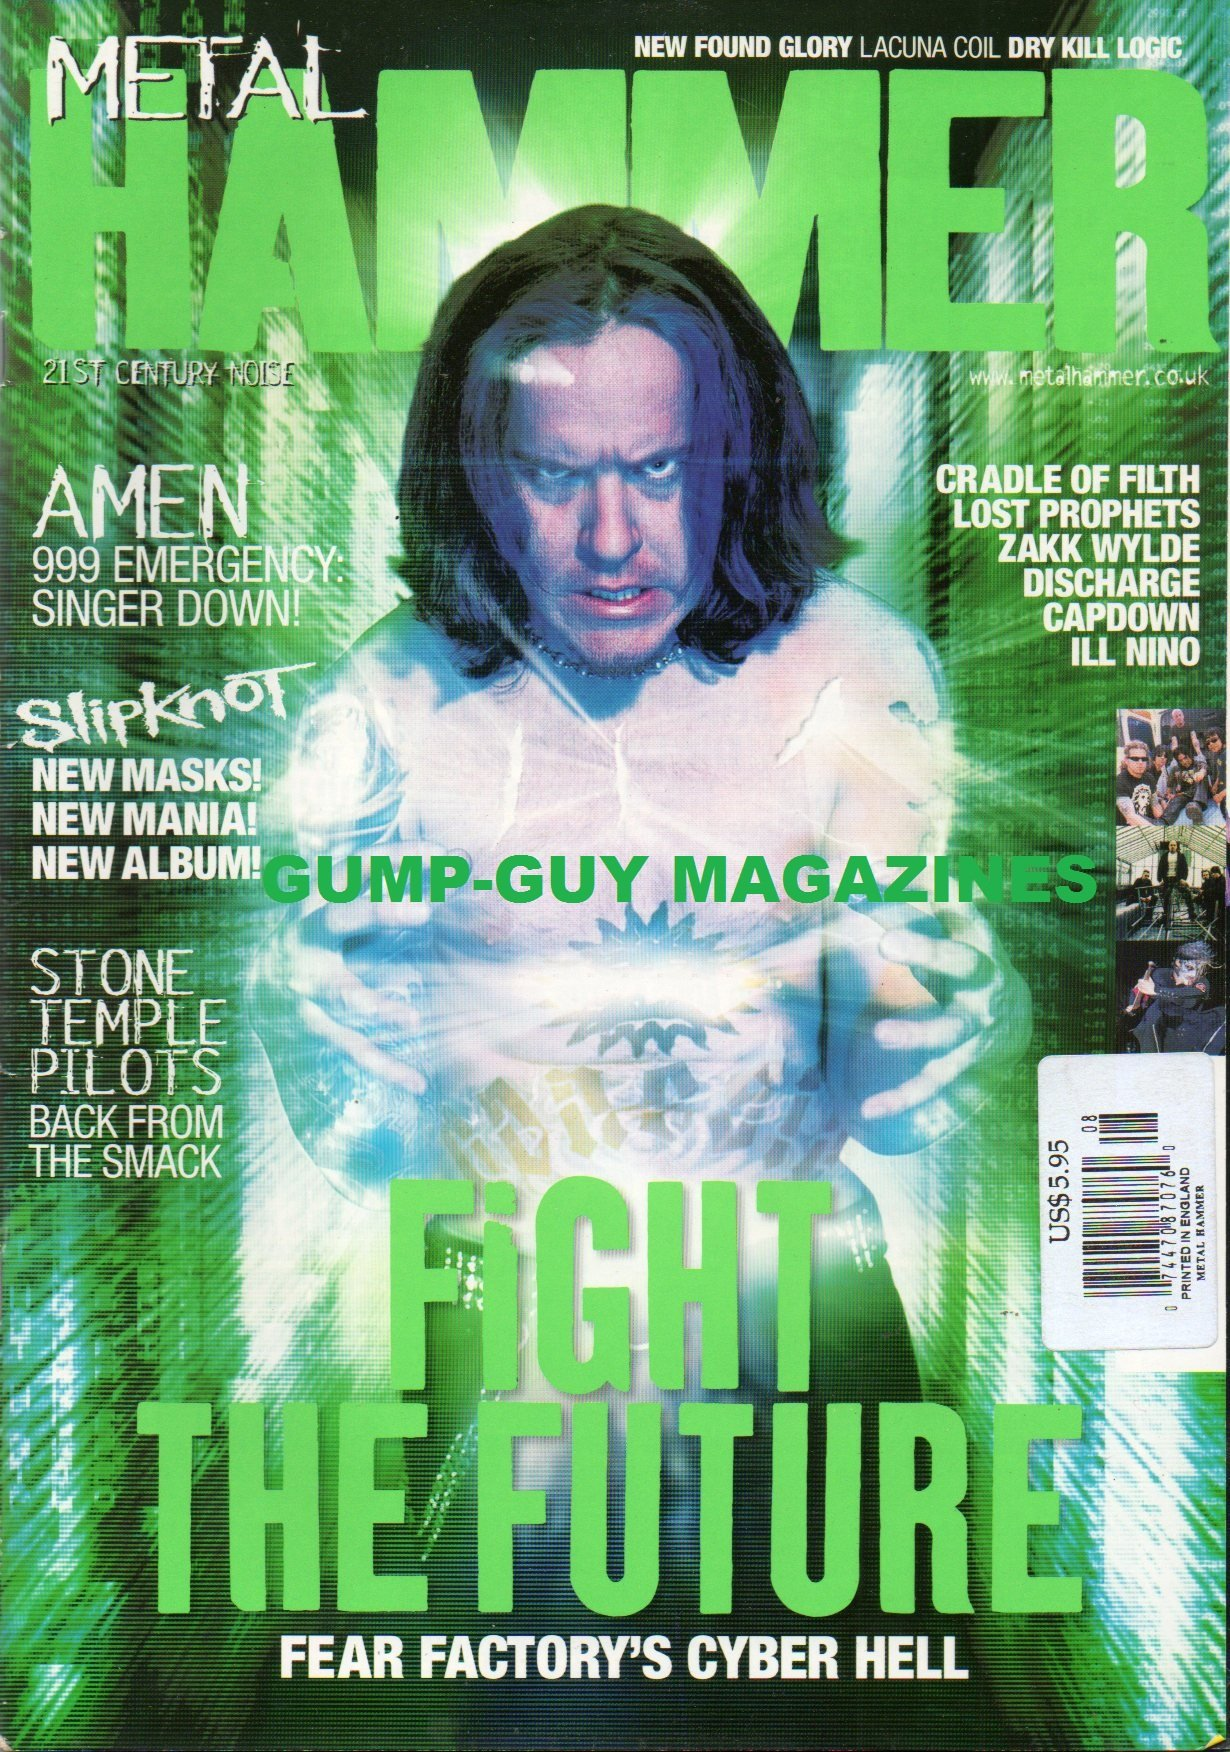 Read Online METAL HAMMER #90 CRADLE OF FILTH Slipknot NEW FOUND GLORY Lucina Coil STONE TEMPLE PILOTS: BACK FROM THE SMACK Fight The Future FEAR FACTORY'S CYBER HELL PDF